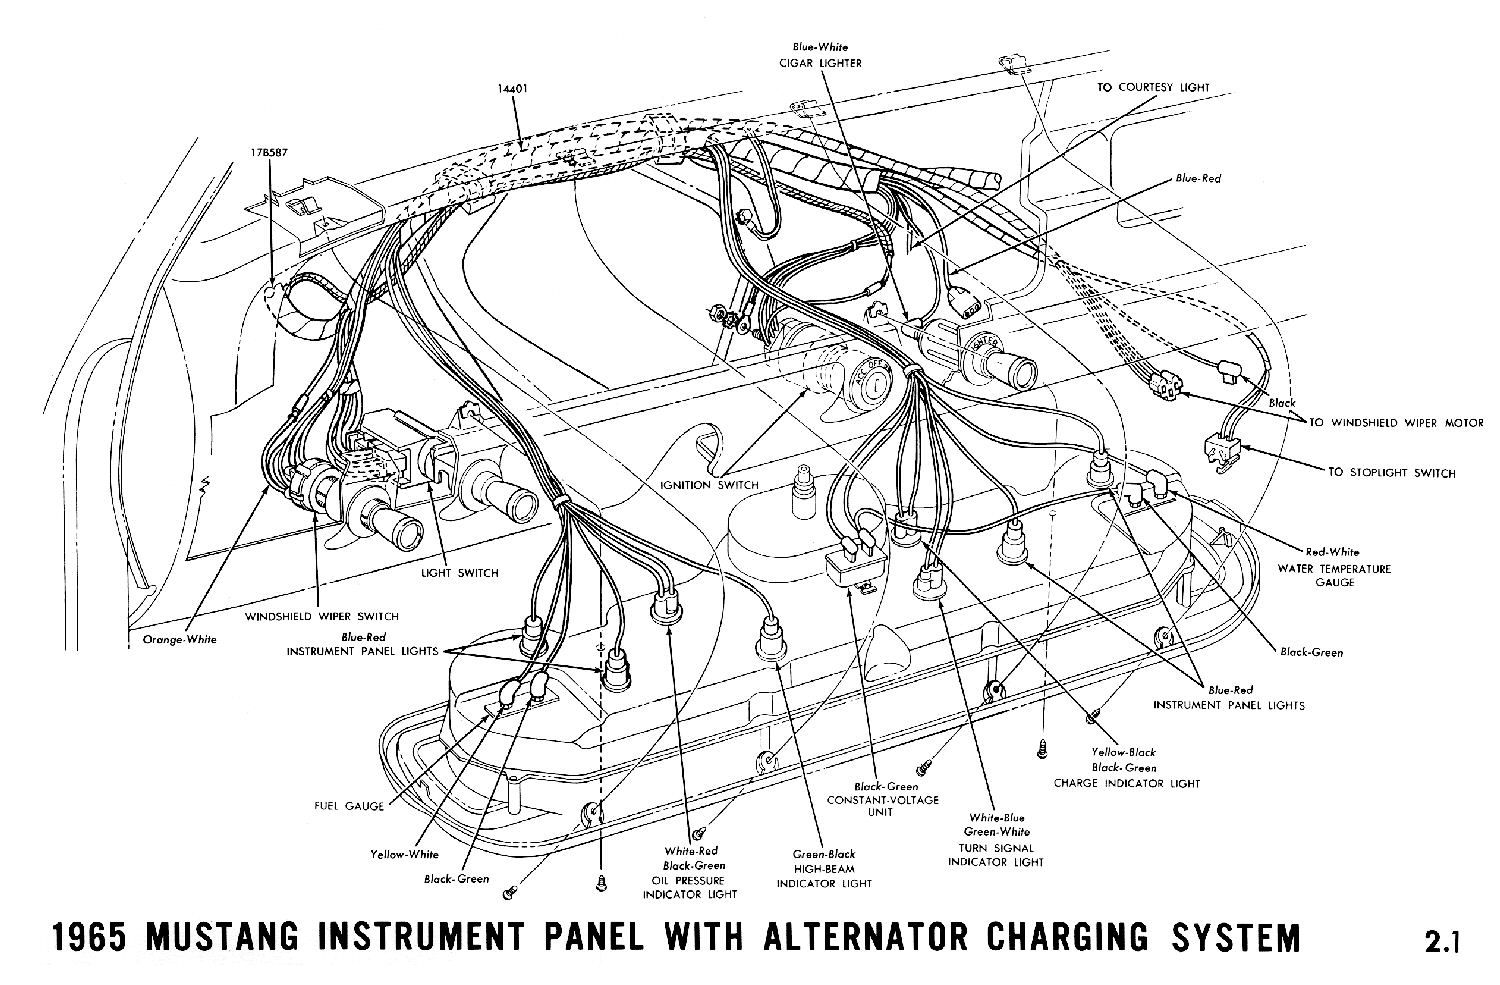 1965 Mustang Wiper Wire Diagram Wiring Schematic